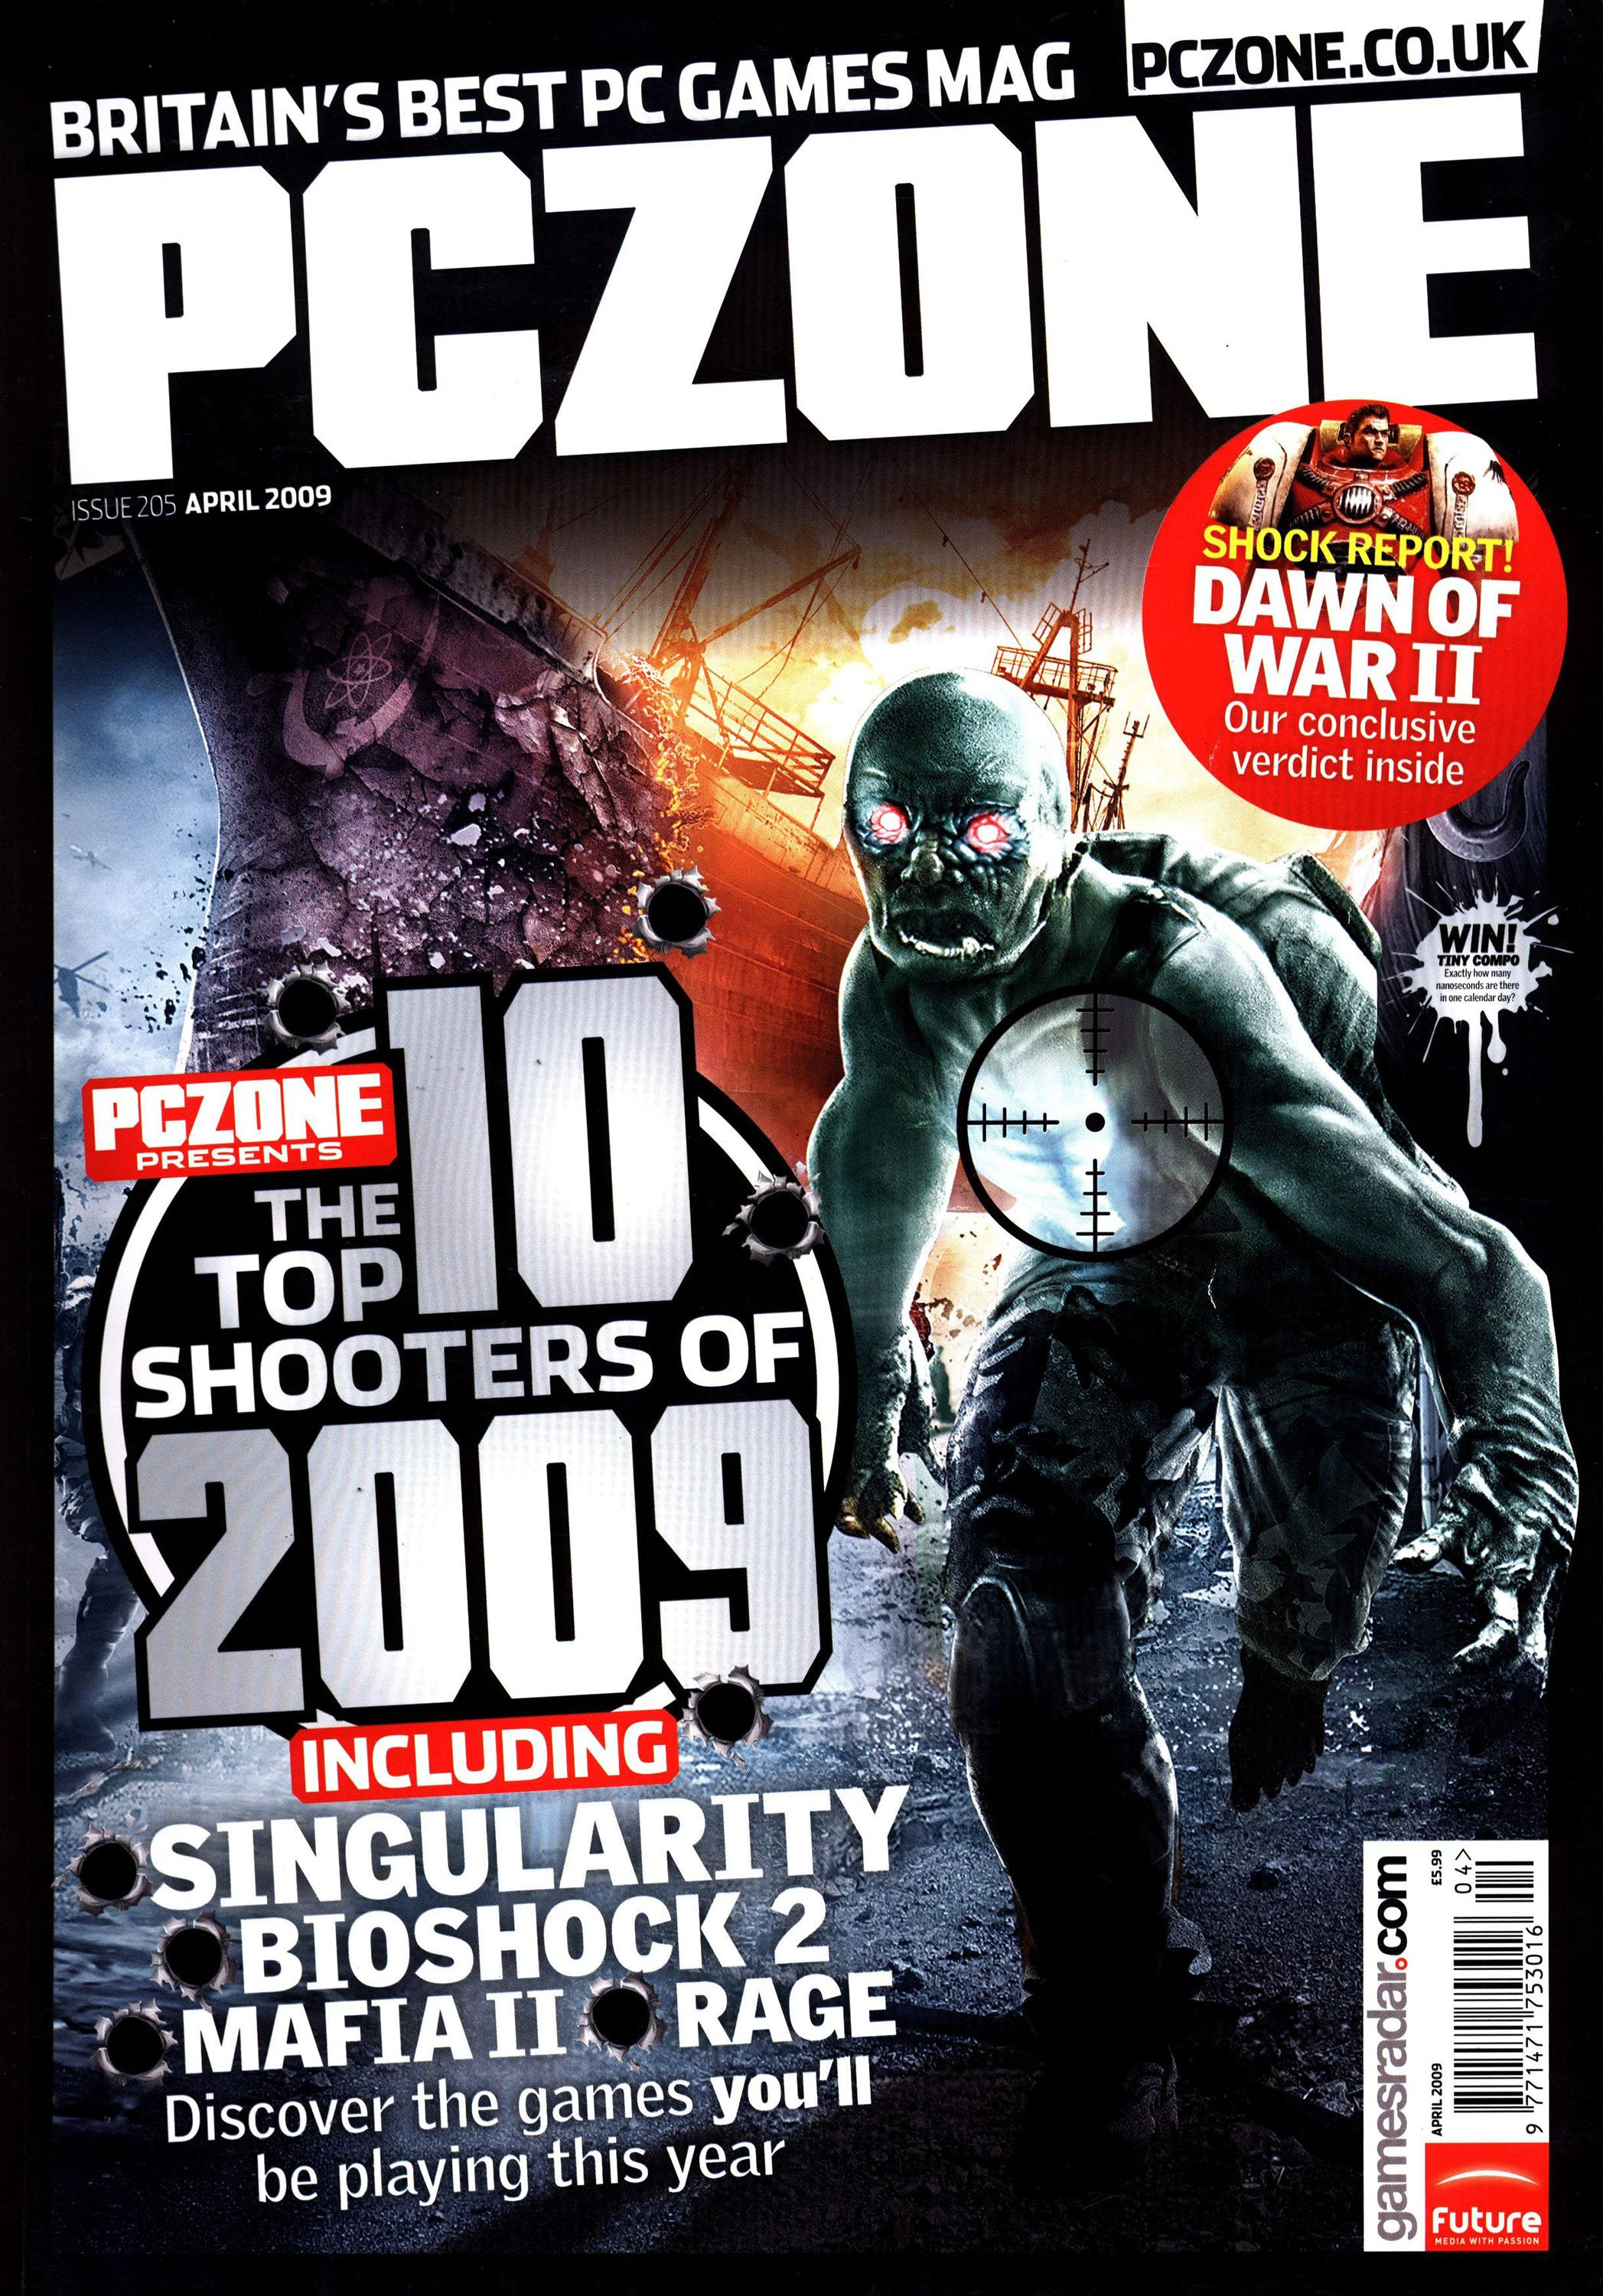 PC Zone Issue 205 (April 2009)